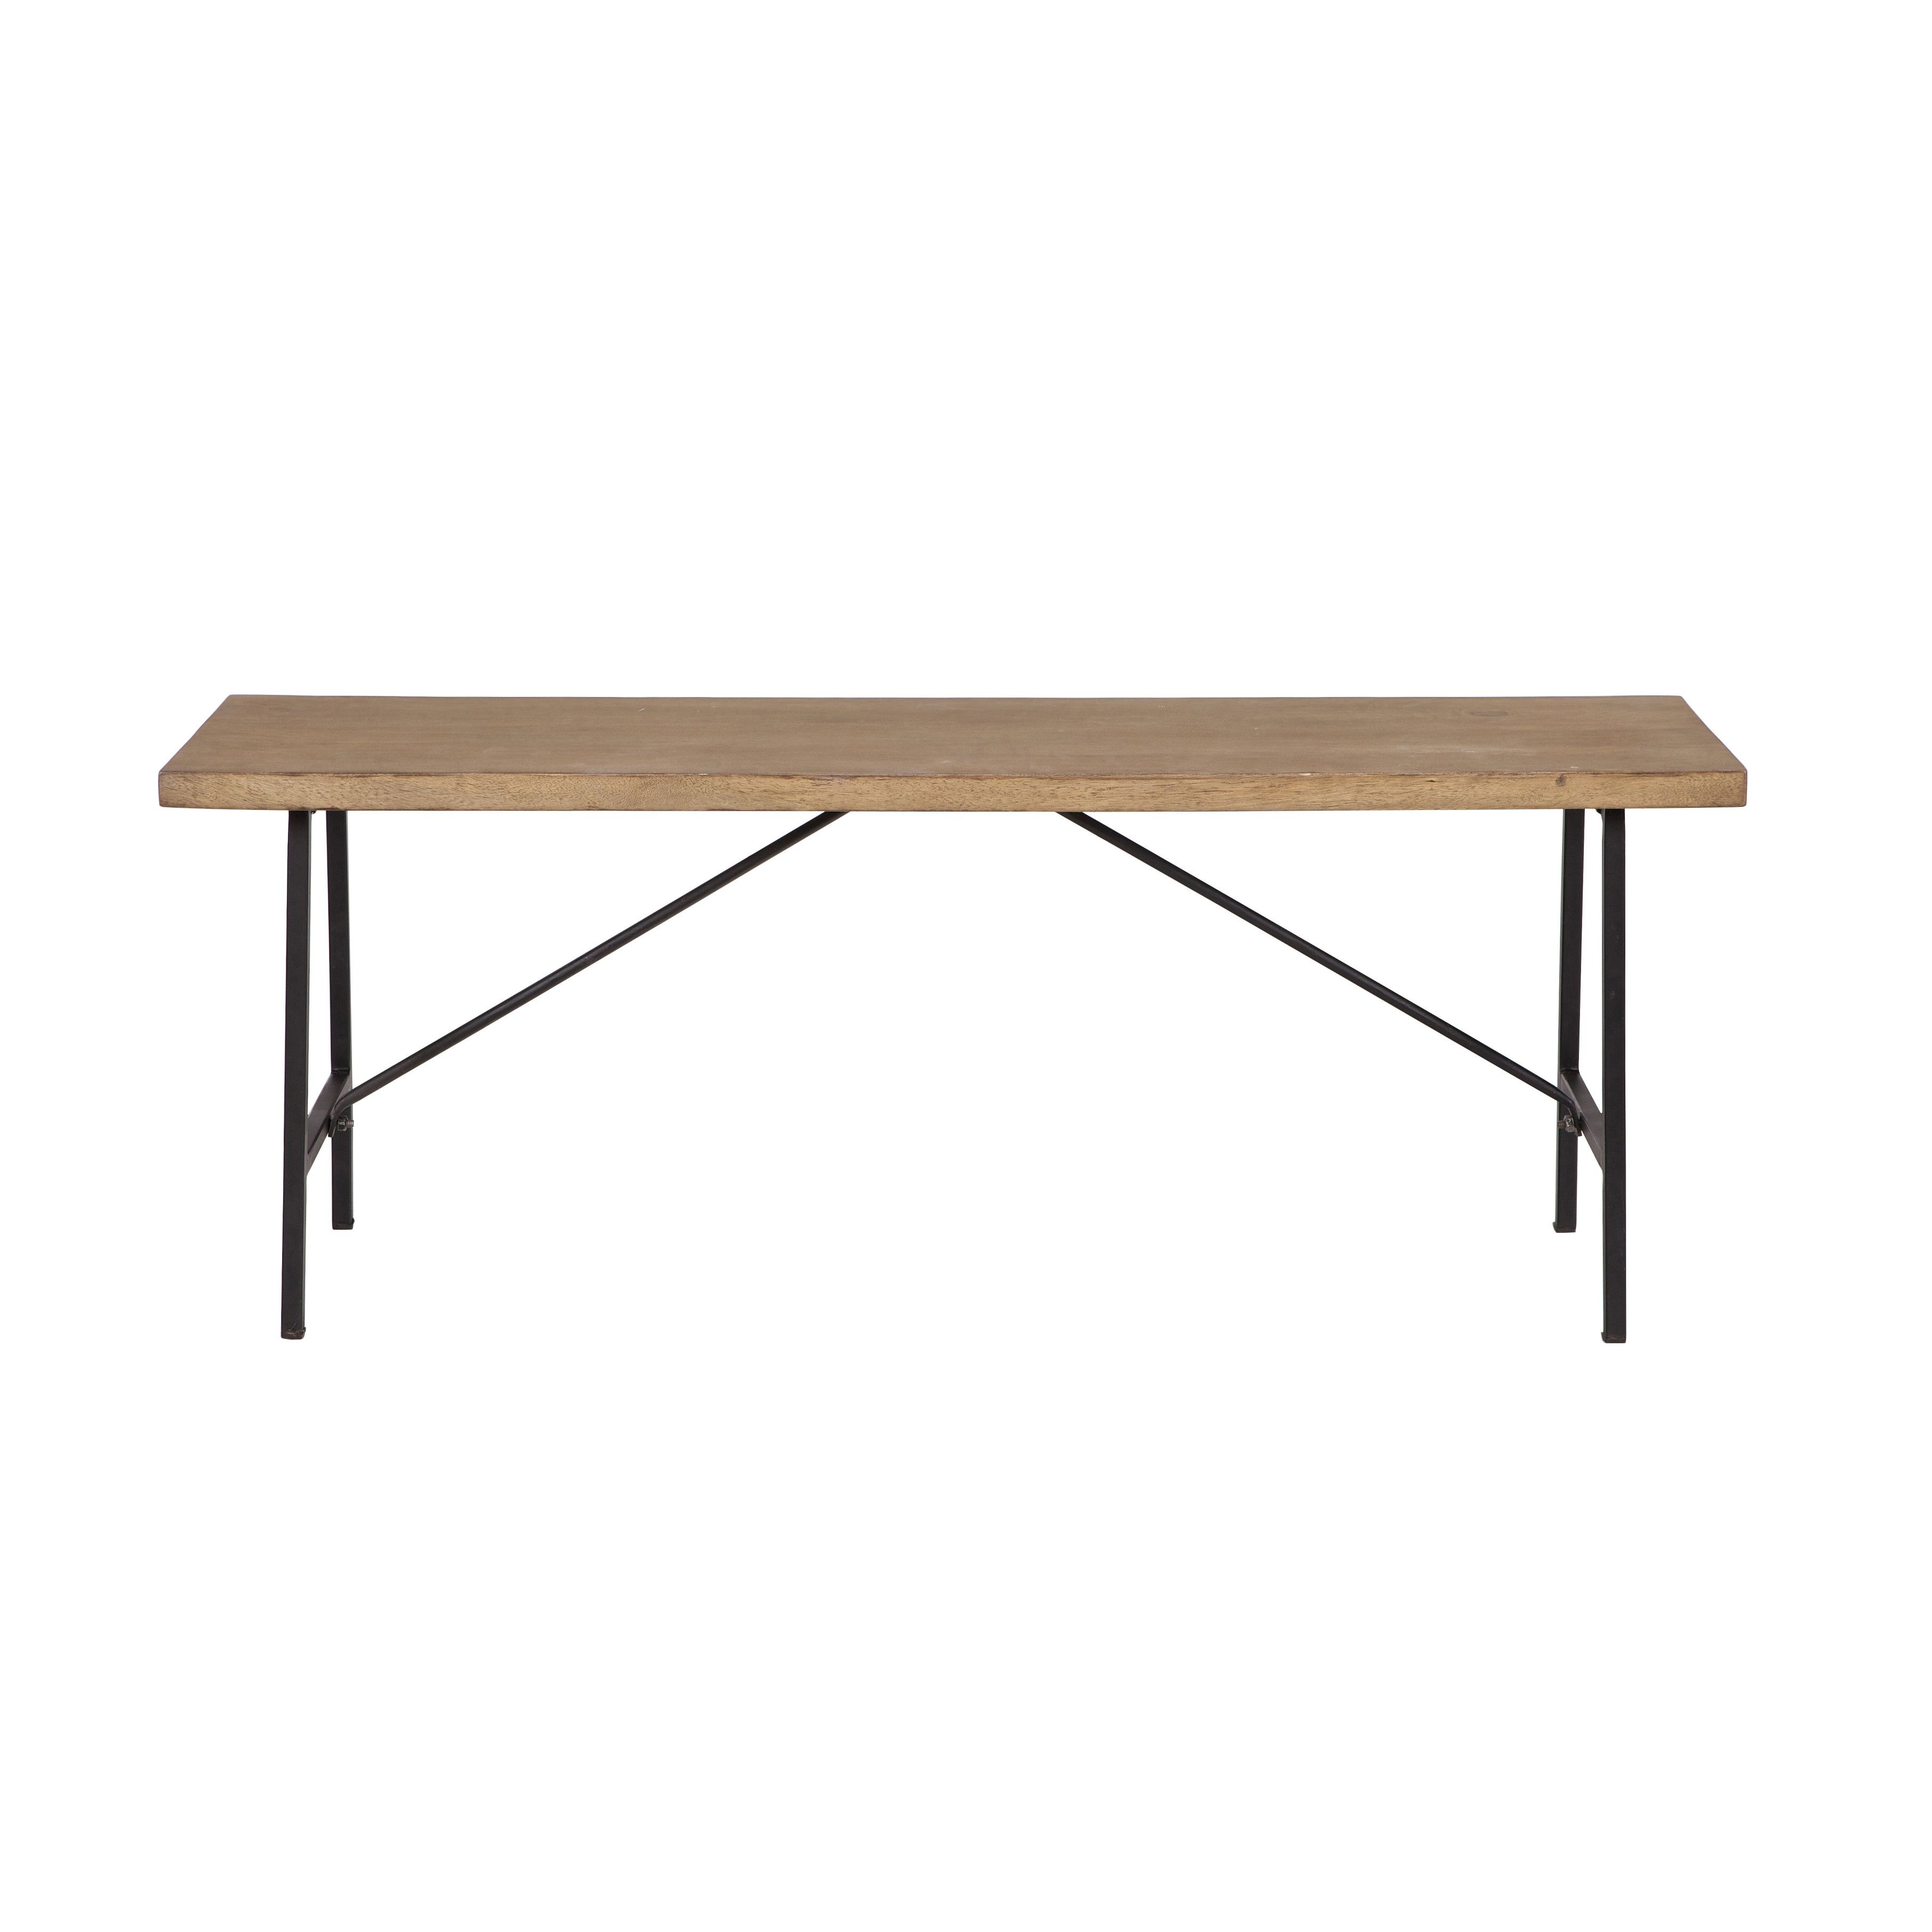 Woood Be Pure College Wooden Bench Wooden Bench Bench Furniture [ 3623 x 3623 Pixel ]